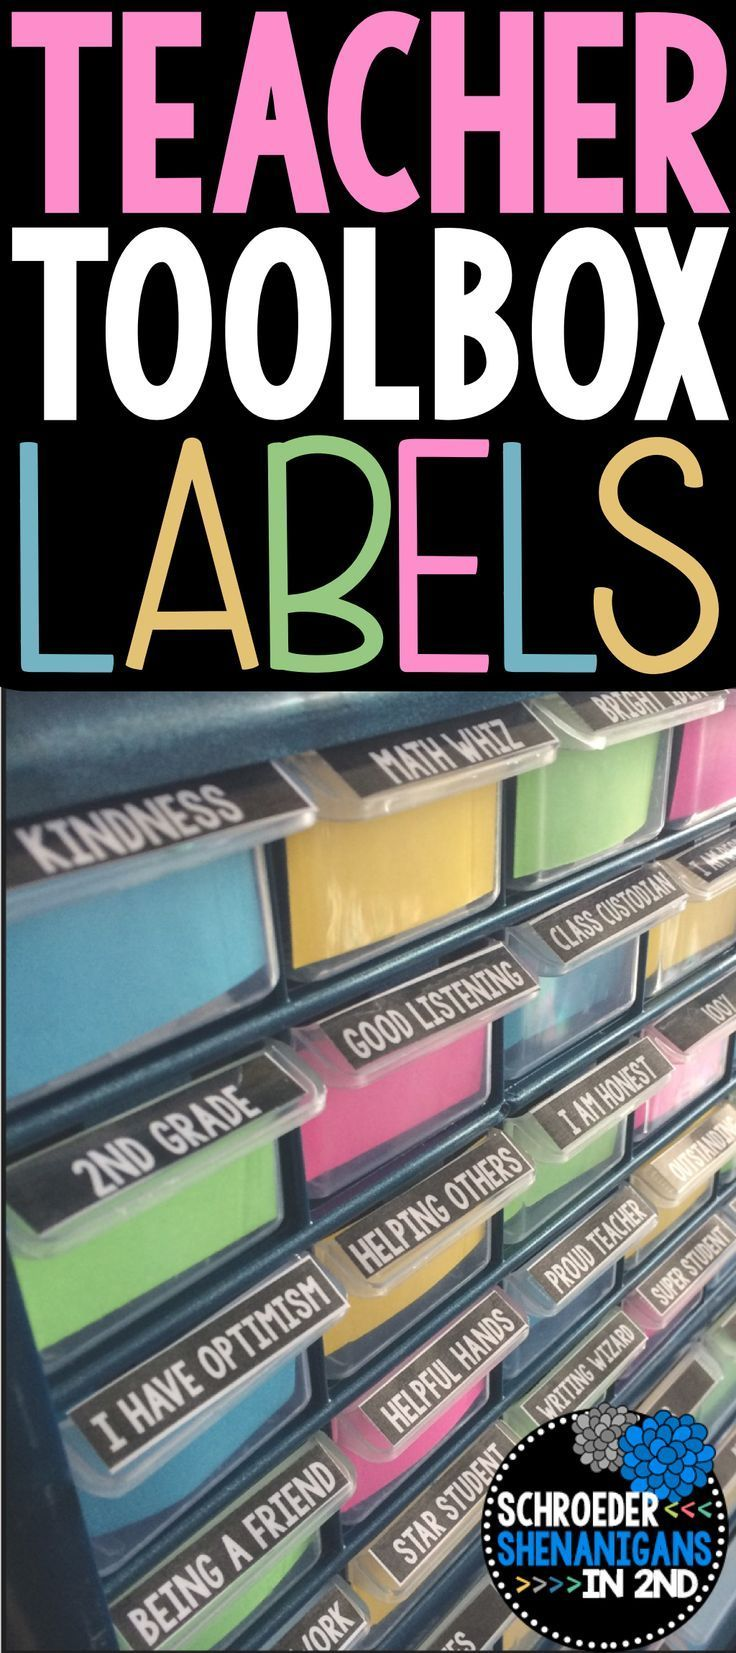 These teacher toolbox labels are perfect for labeling the small and larger drawers of any toolbox organizer that you can pick up from the hardware store. I am using my editable teacher toolbox labels to label my drawers that I will fill with brag tags as well as teacher supplies - check out the attached blog post written by Lucky Little Learners about BRAG TAGS which are what are hiding in these brightly labeled drawers!